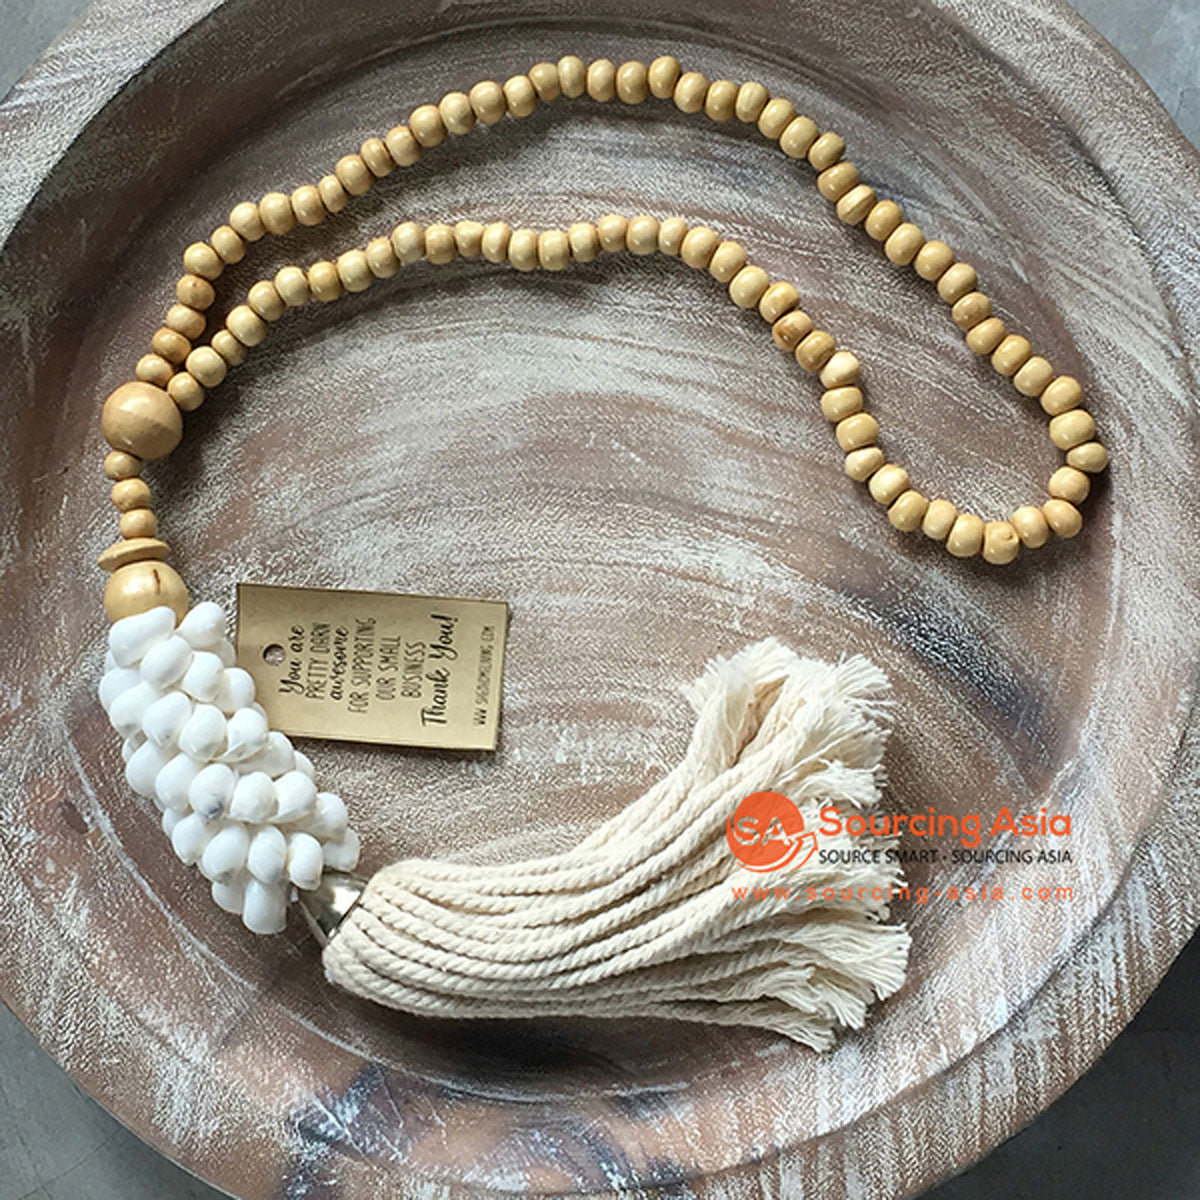 SHL047-6 NATURAL TIMBER BEADS AND WHITE SHELL DECORATIVE TASSEL WITH MACRAME YARN